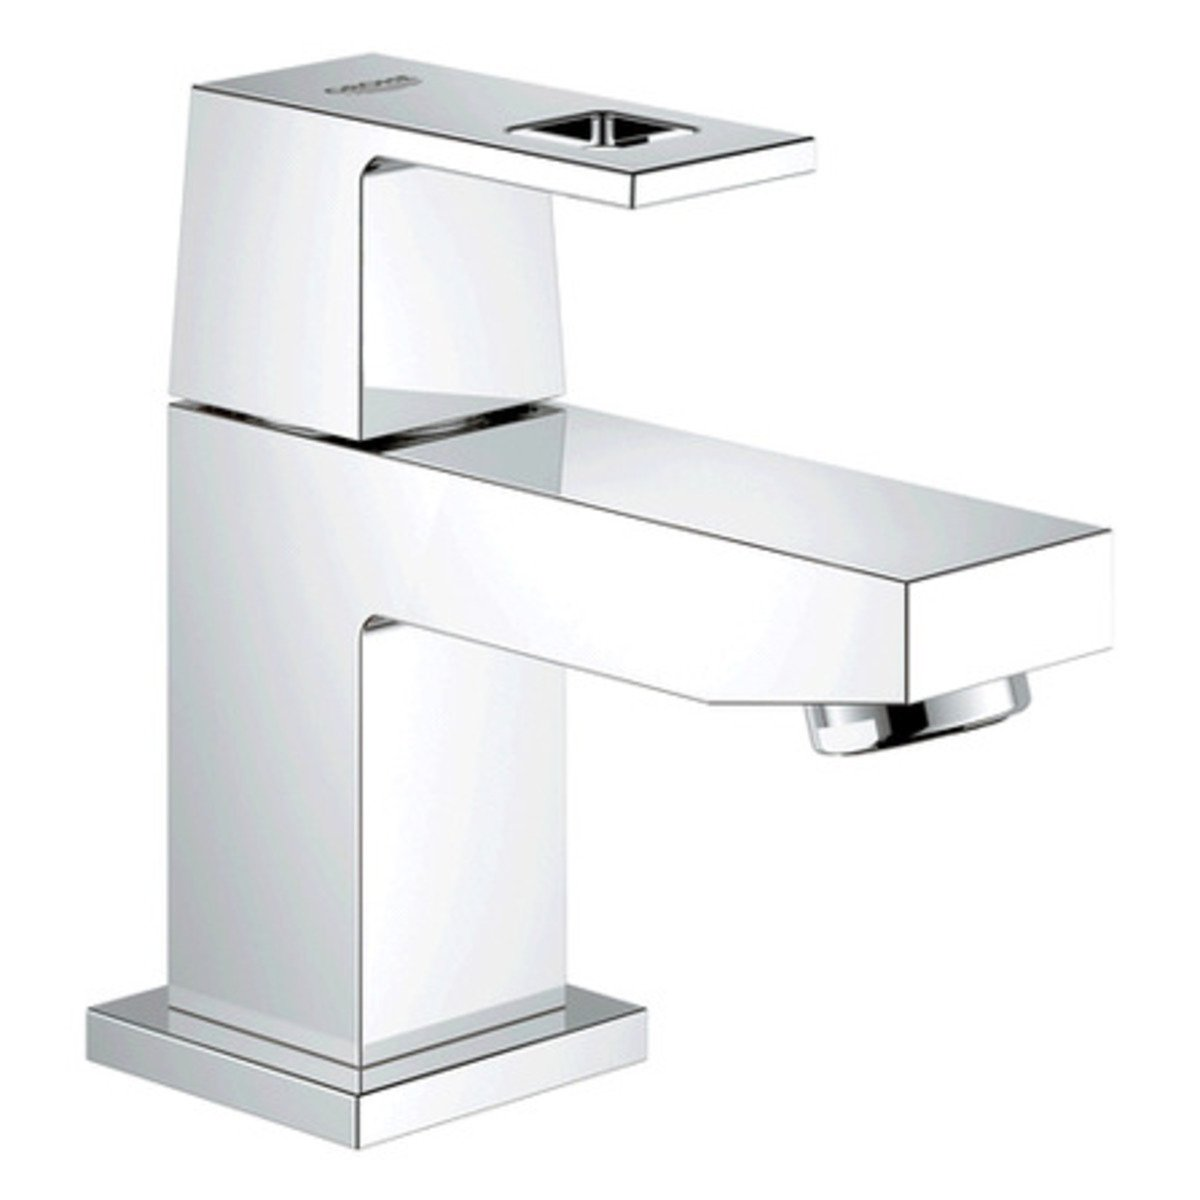 grohe eurocube robinet lave mains chrome 23137000. Black Bedroom Furniture Sets. Home Design Ideas